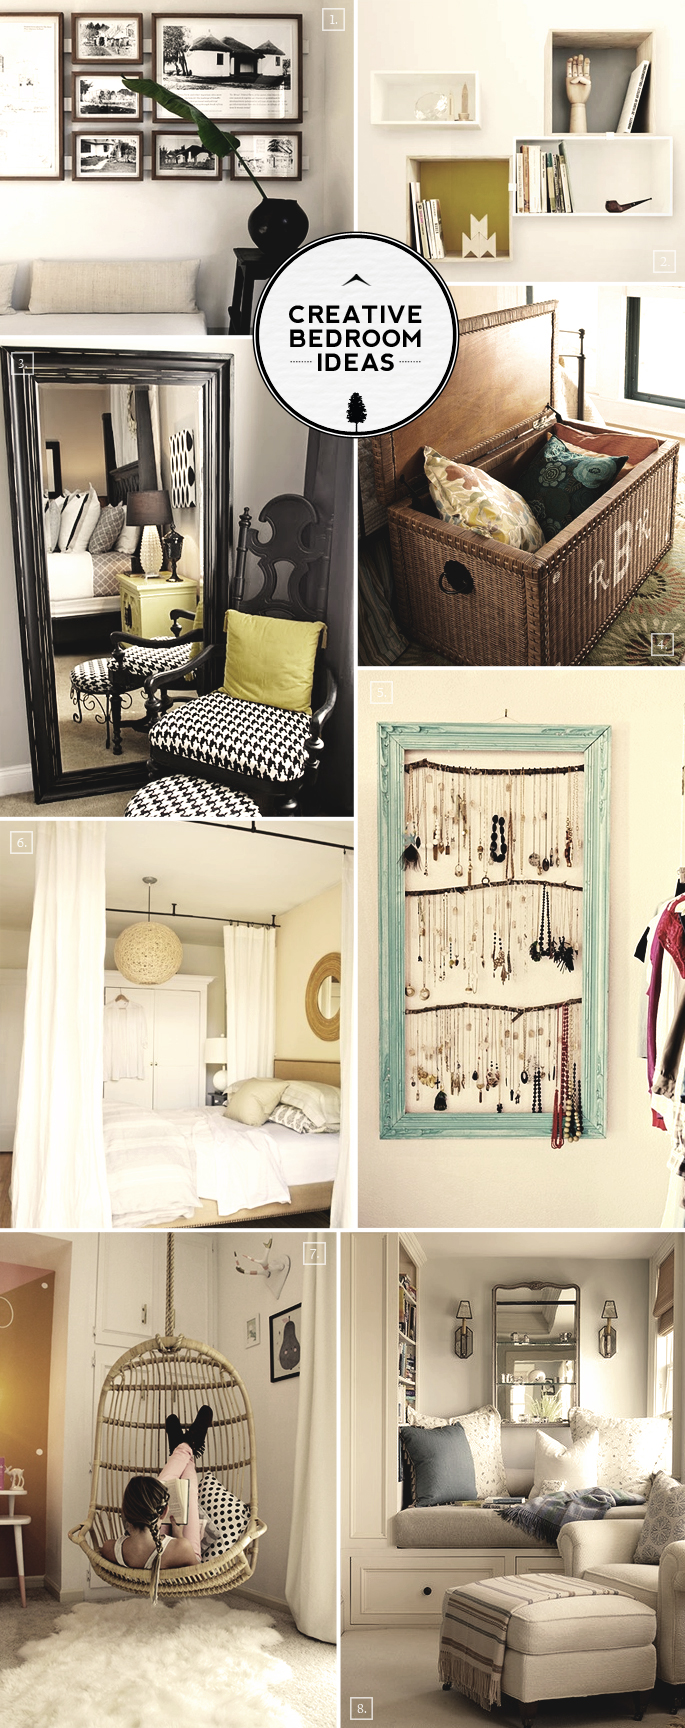 creative bedroom ideas from reading nooks to hanging chairs home